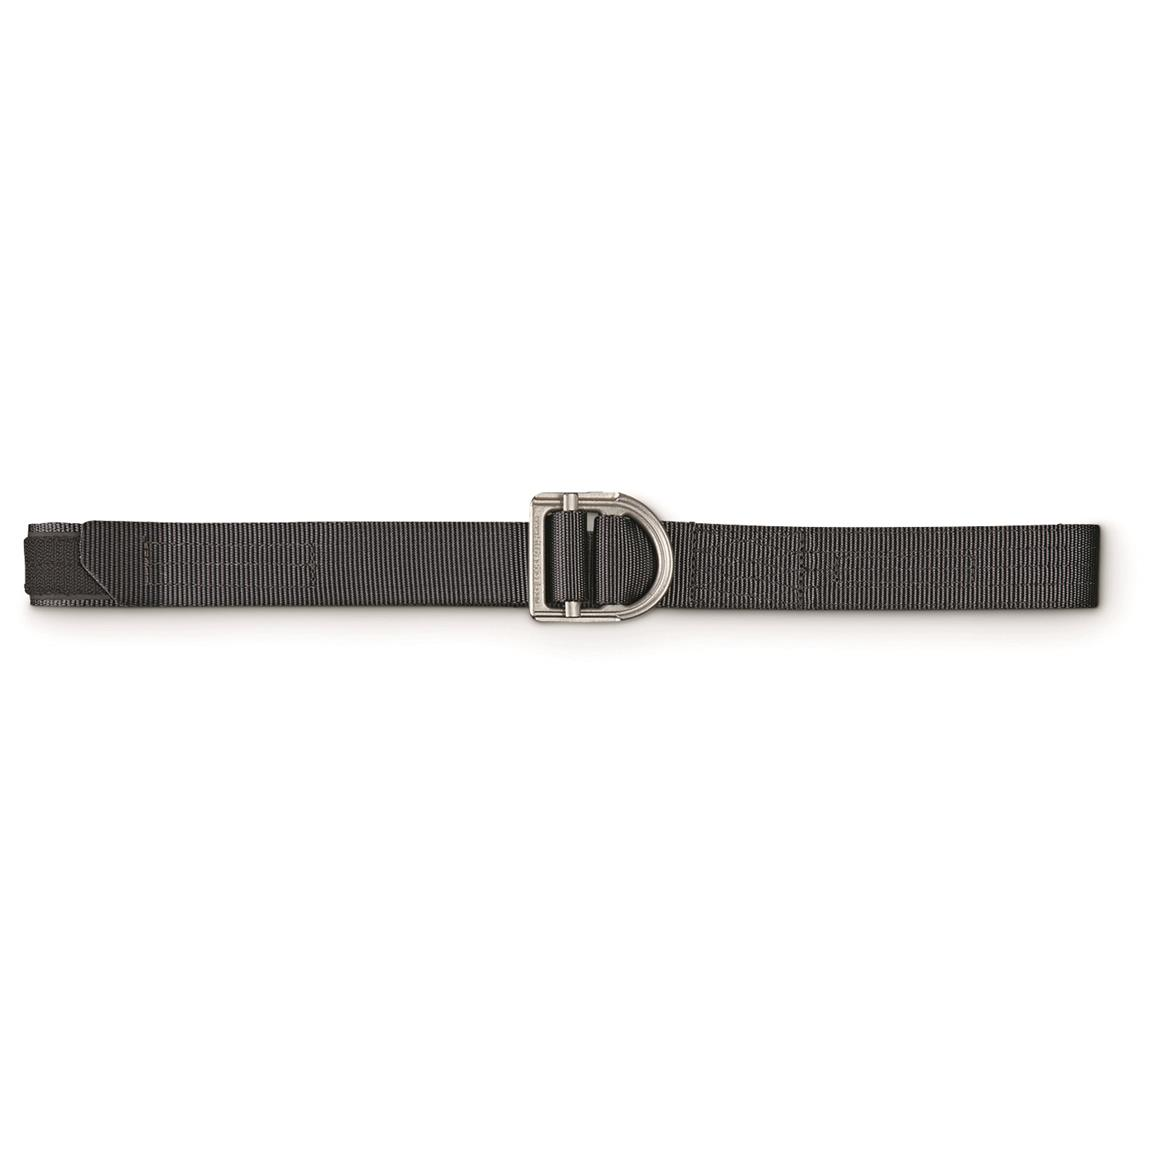 "5.11 Tactical 1 1/2"" Wide Trainer Belt, Charcoal"